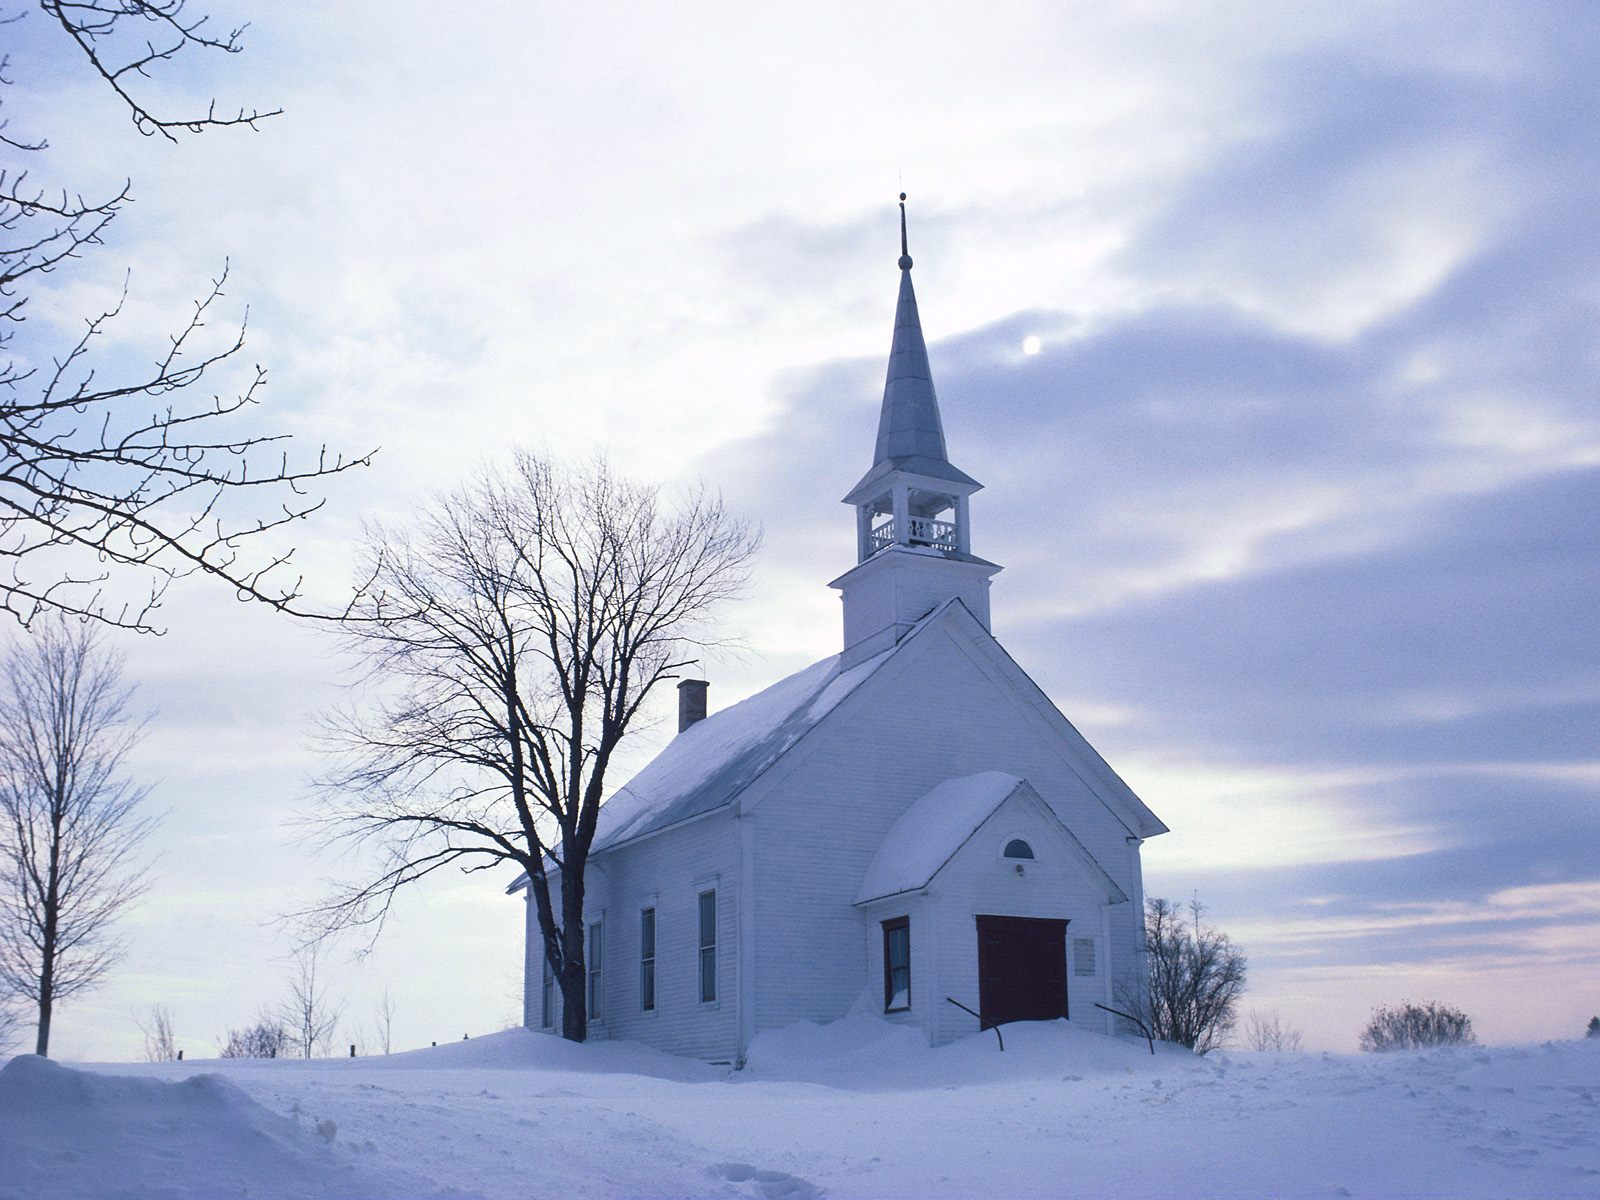 snowy church and xmas - photo #38